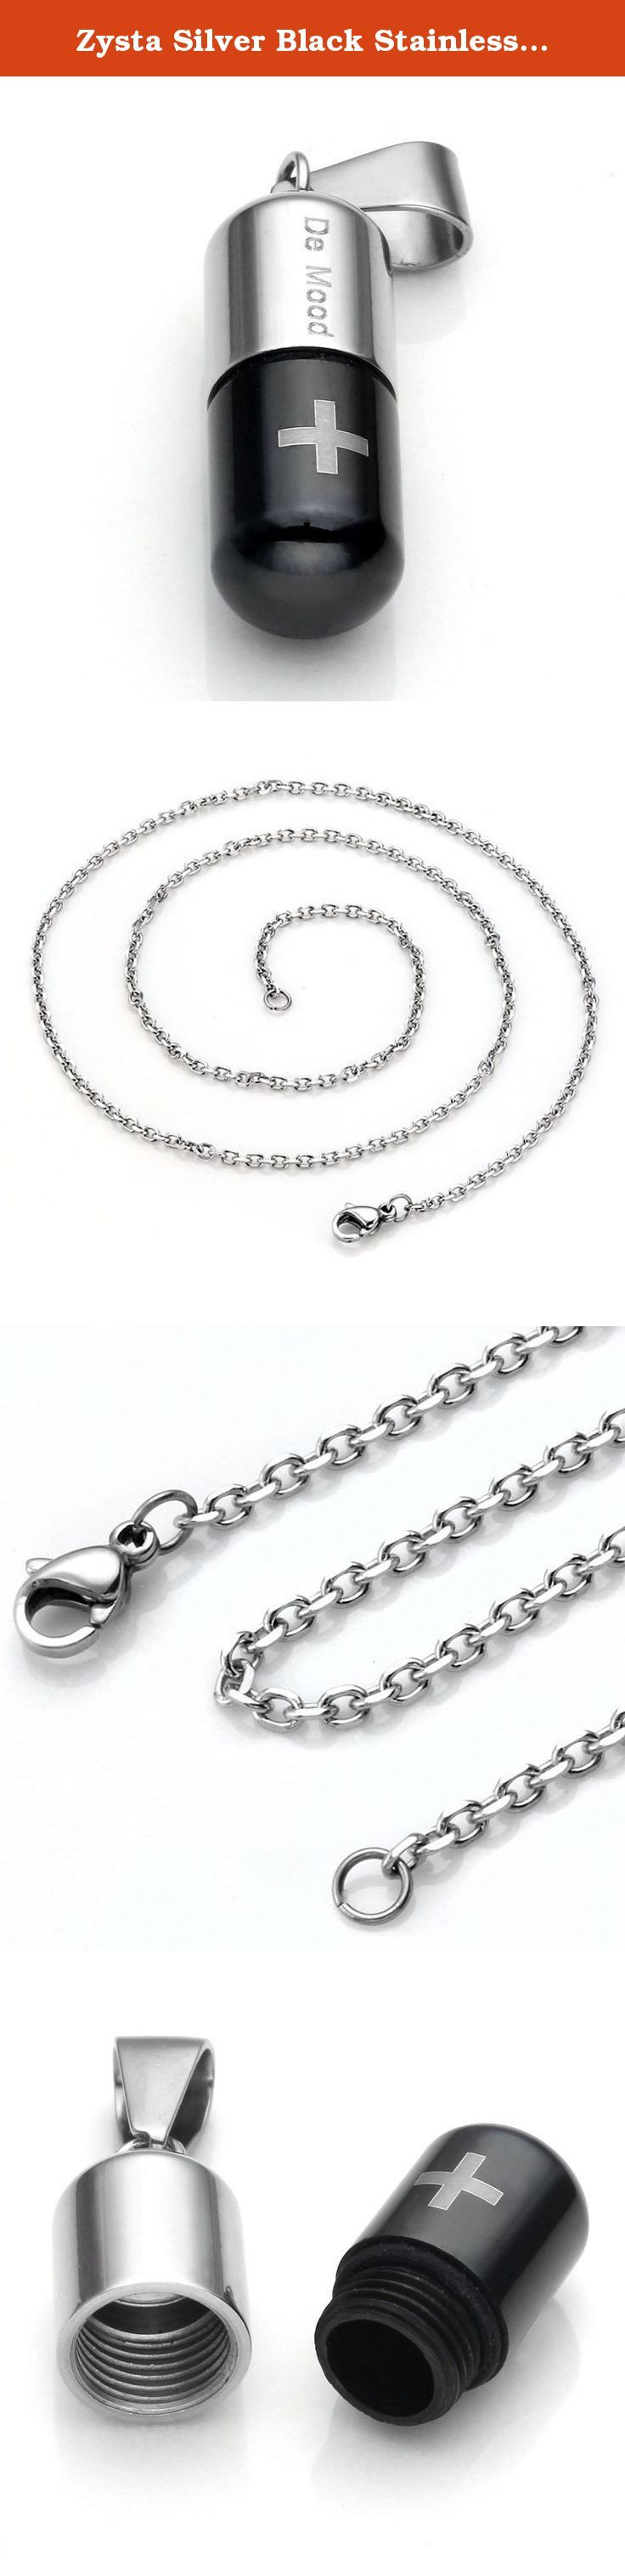 """Zysta Silver Black Stainless Steel Cross Pill Storage Container Pendant Necklace with Curb Cable Link Chain (18"""" - 26"""" Available). Pendant Arrives With a Complimentary Silver Stainless Steel Chain. Please choose the suitable length of chain. Material: Stainless Steel. Pendant Size: 1""""(24MM) H x 3/8"""" (10MM) W; inner Diam:6MM. Chain Width:2MM; Chain Length: 20""""(Note: The Choice Box refers to the Chain Length, Pendant Length Not Included.). For the pendant,you can put pills, hair etc as you..."""